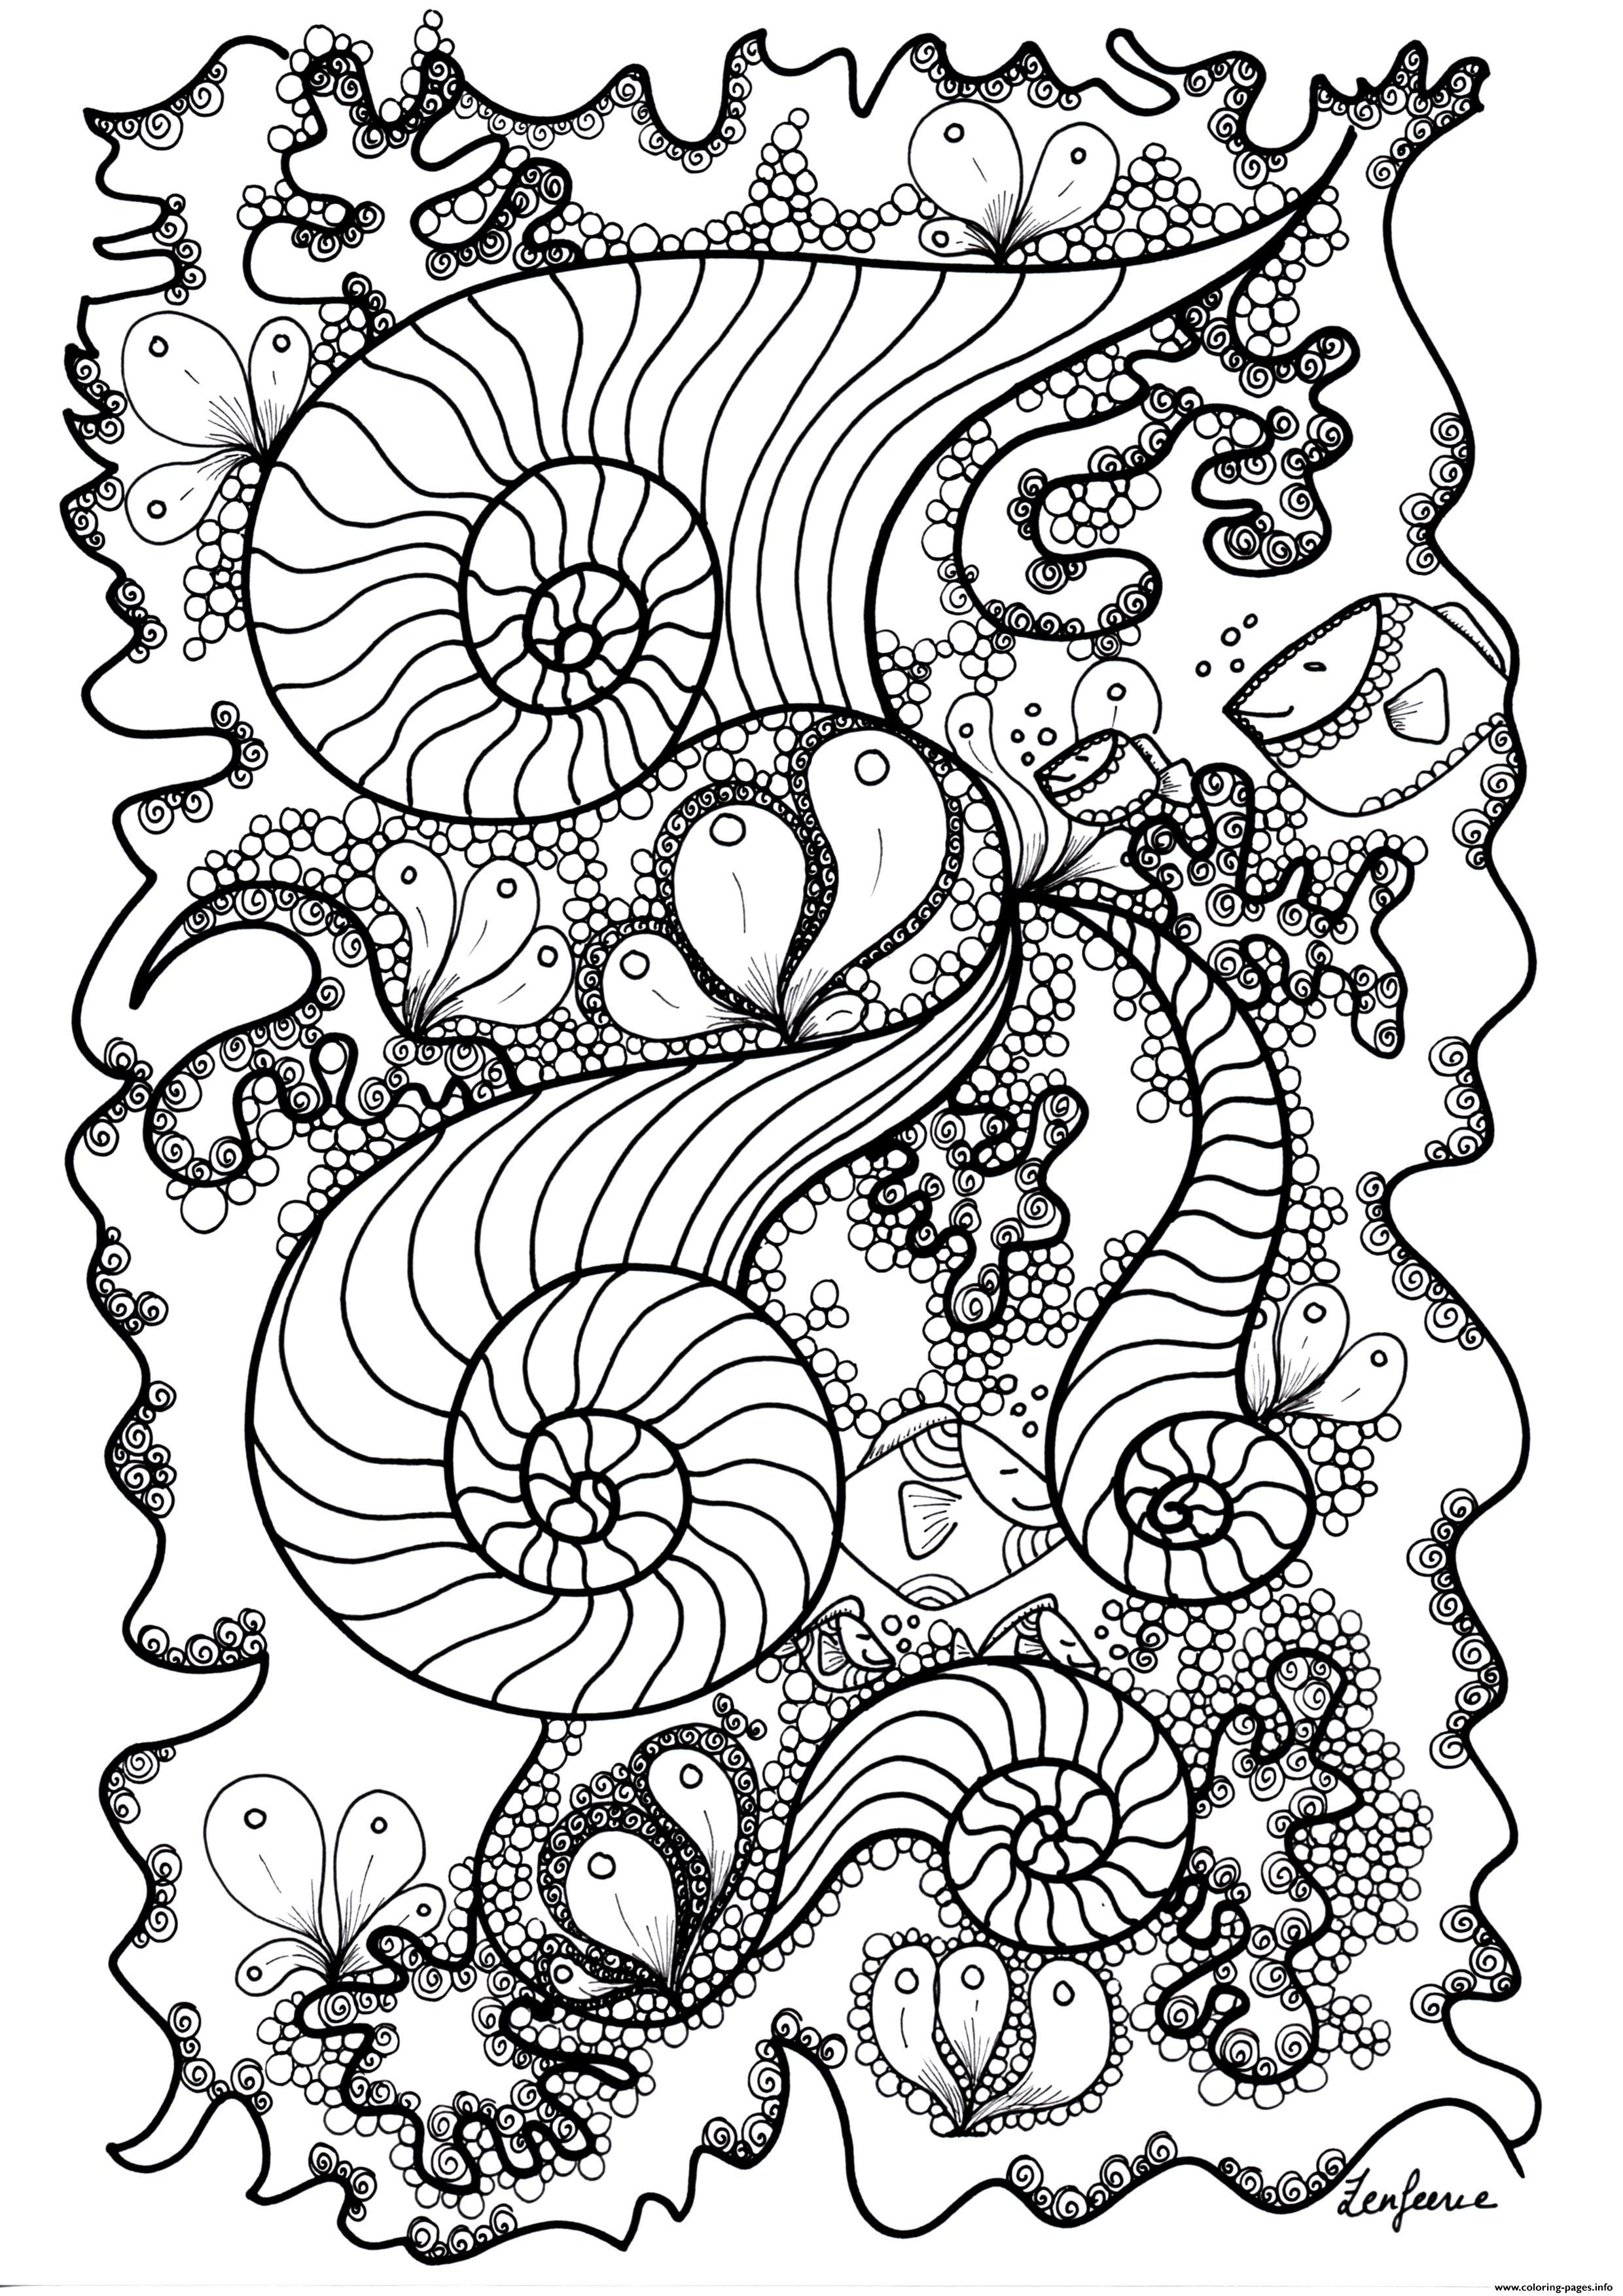 Adult Poisson By Zenfeerie coloring pages